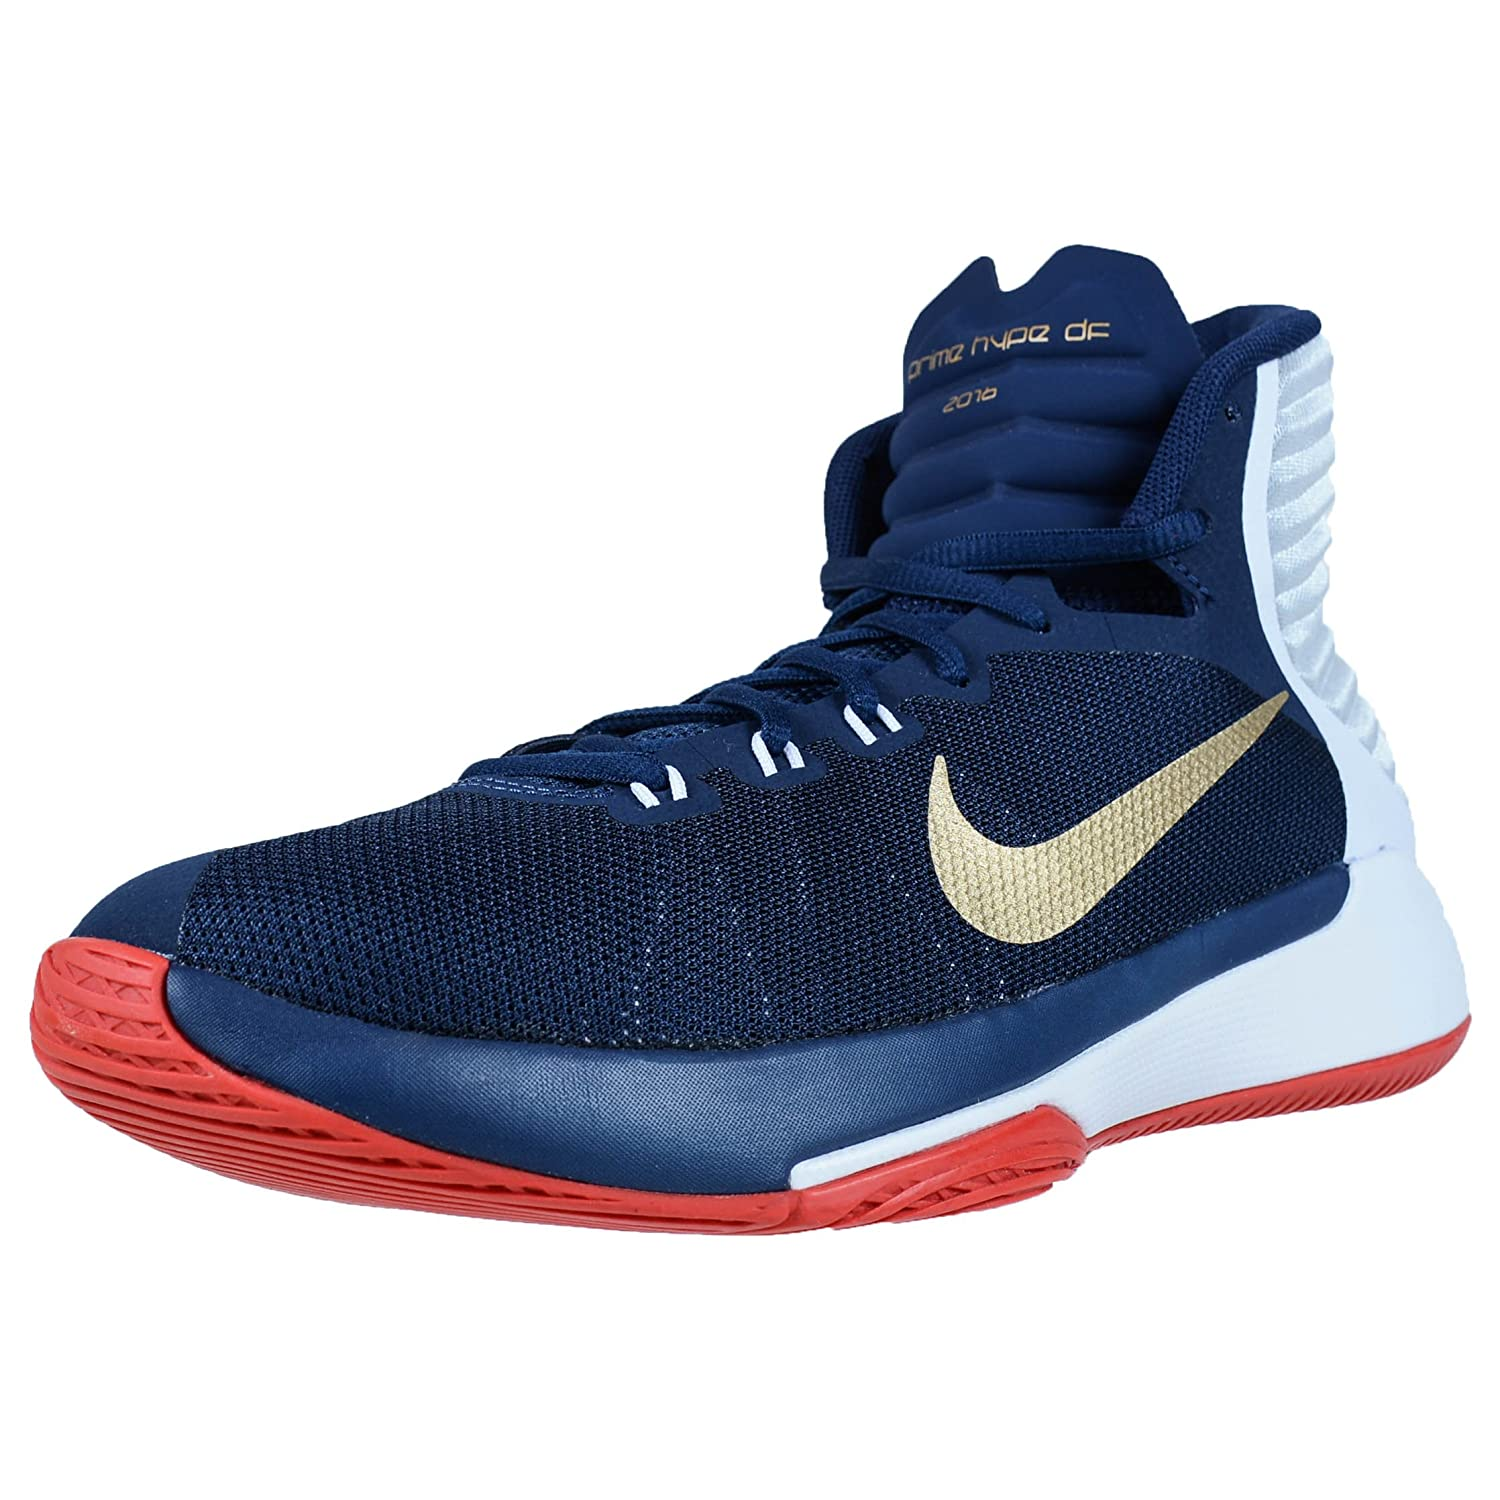 official photos 03175 31b98 Nike Men's Prime Hype DF II Basketball Shoe